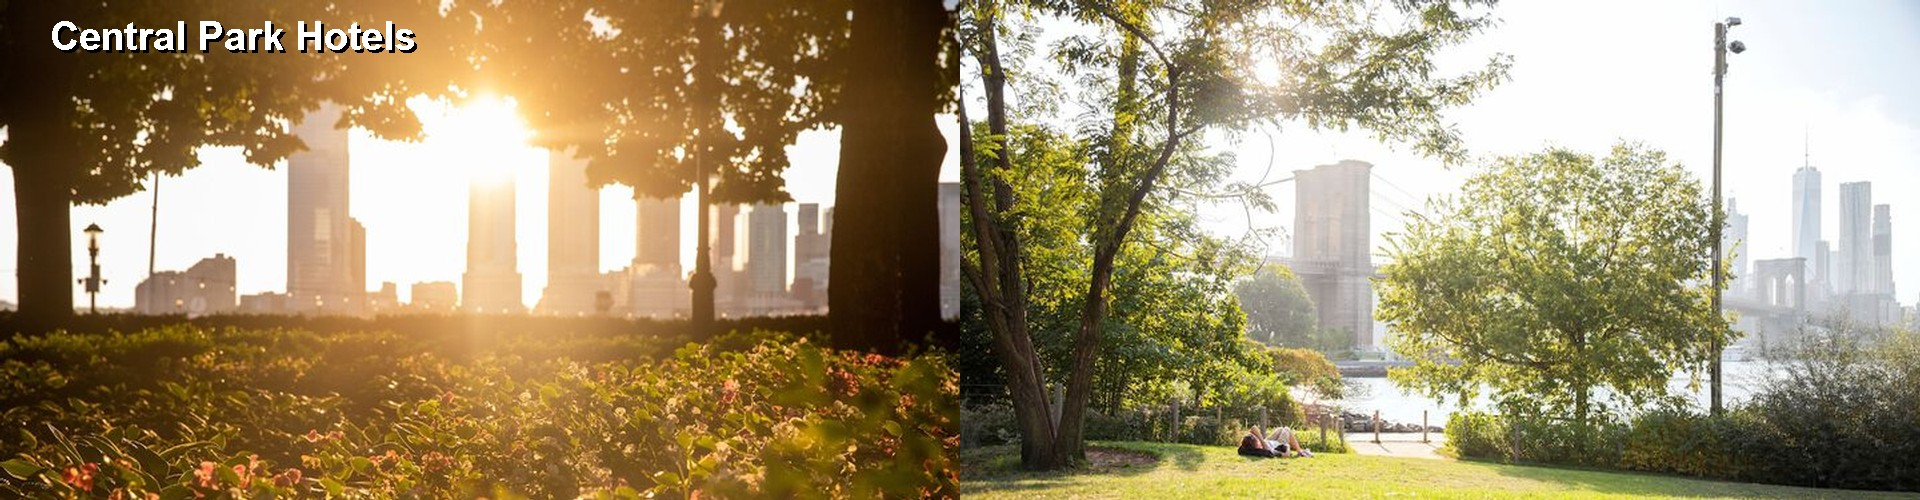 5 Best Hotels near Central Park